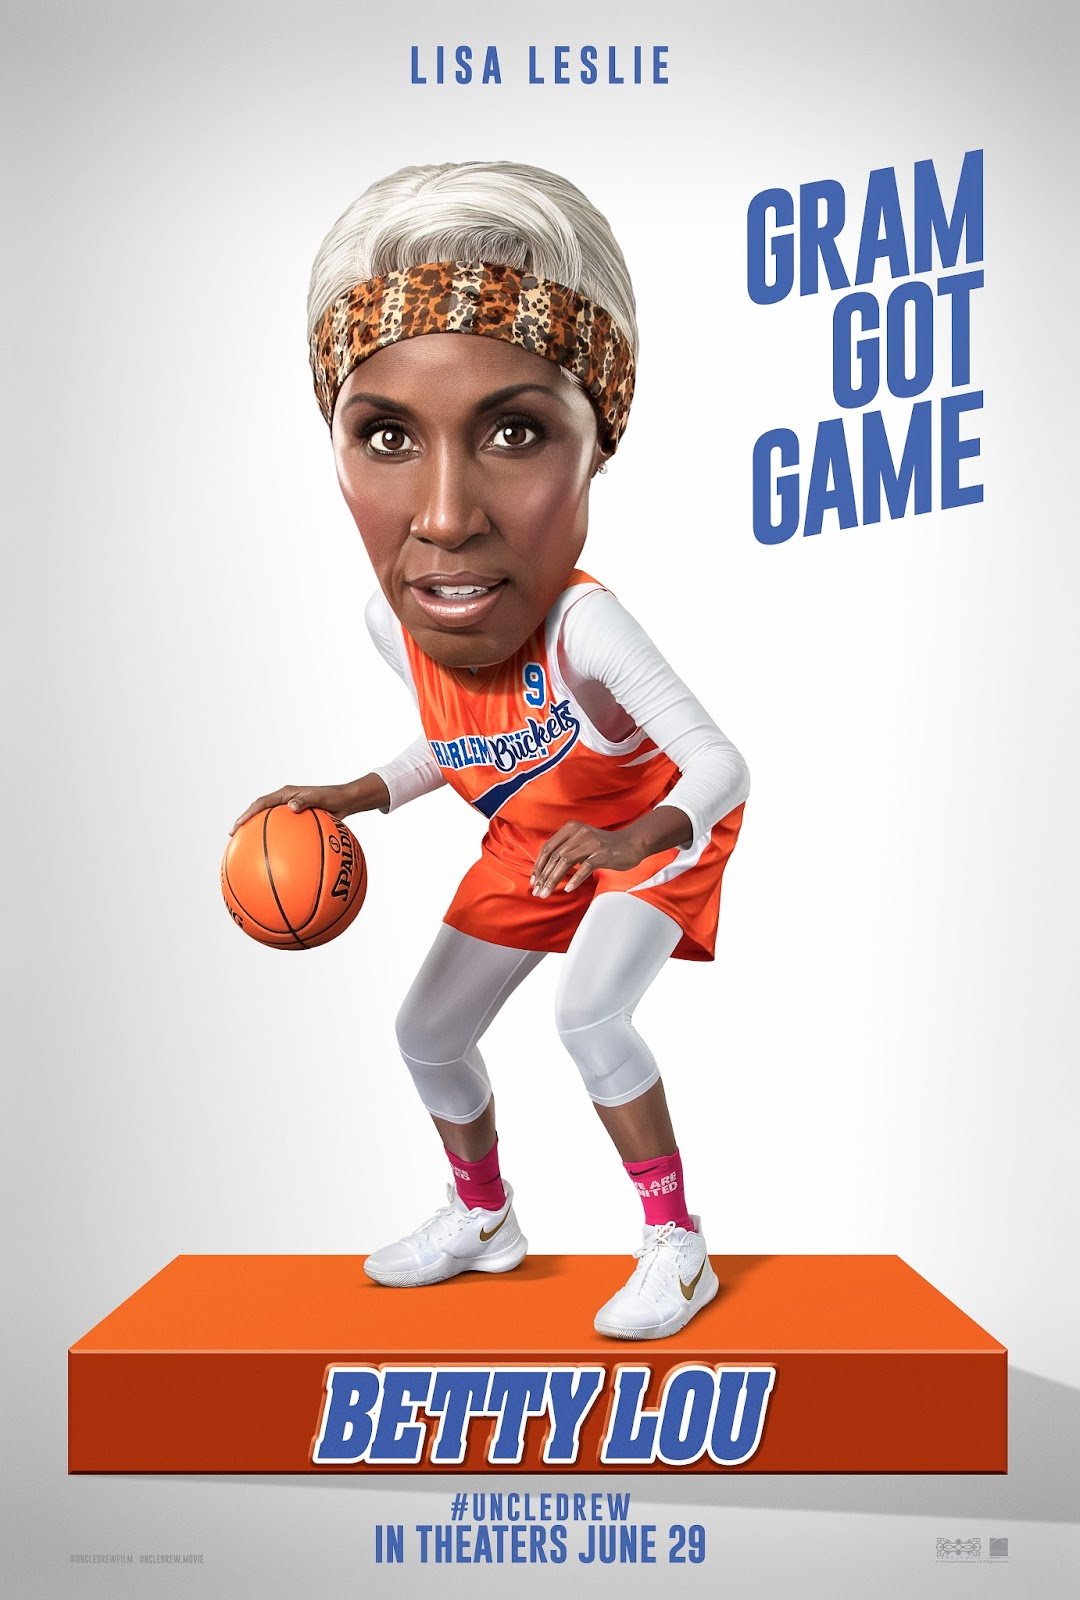 9cd6390b55c After a successful five years as a fan-favorite digital episodic series,  originally conceived by Pepsi, UNCLE DREW, will hit theaters June 29, 2018.